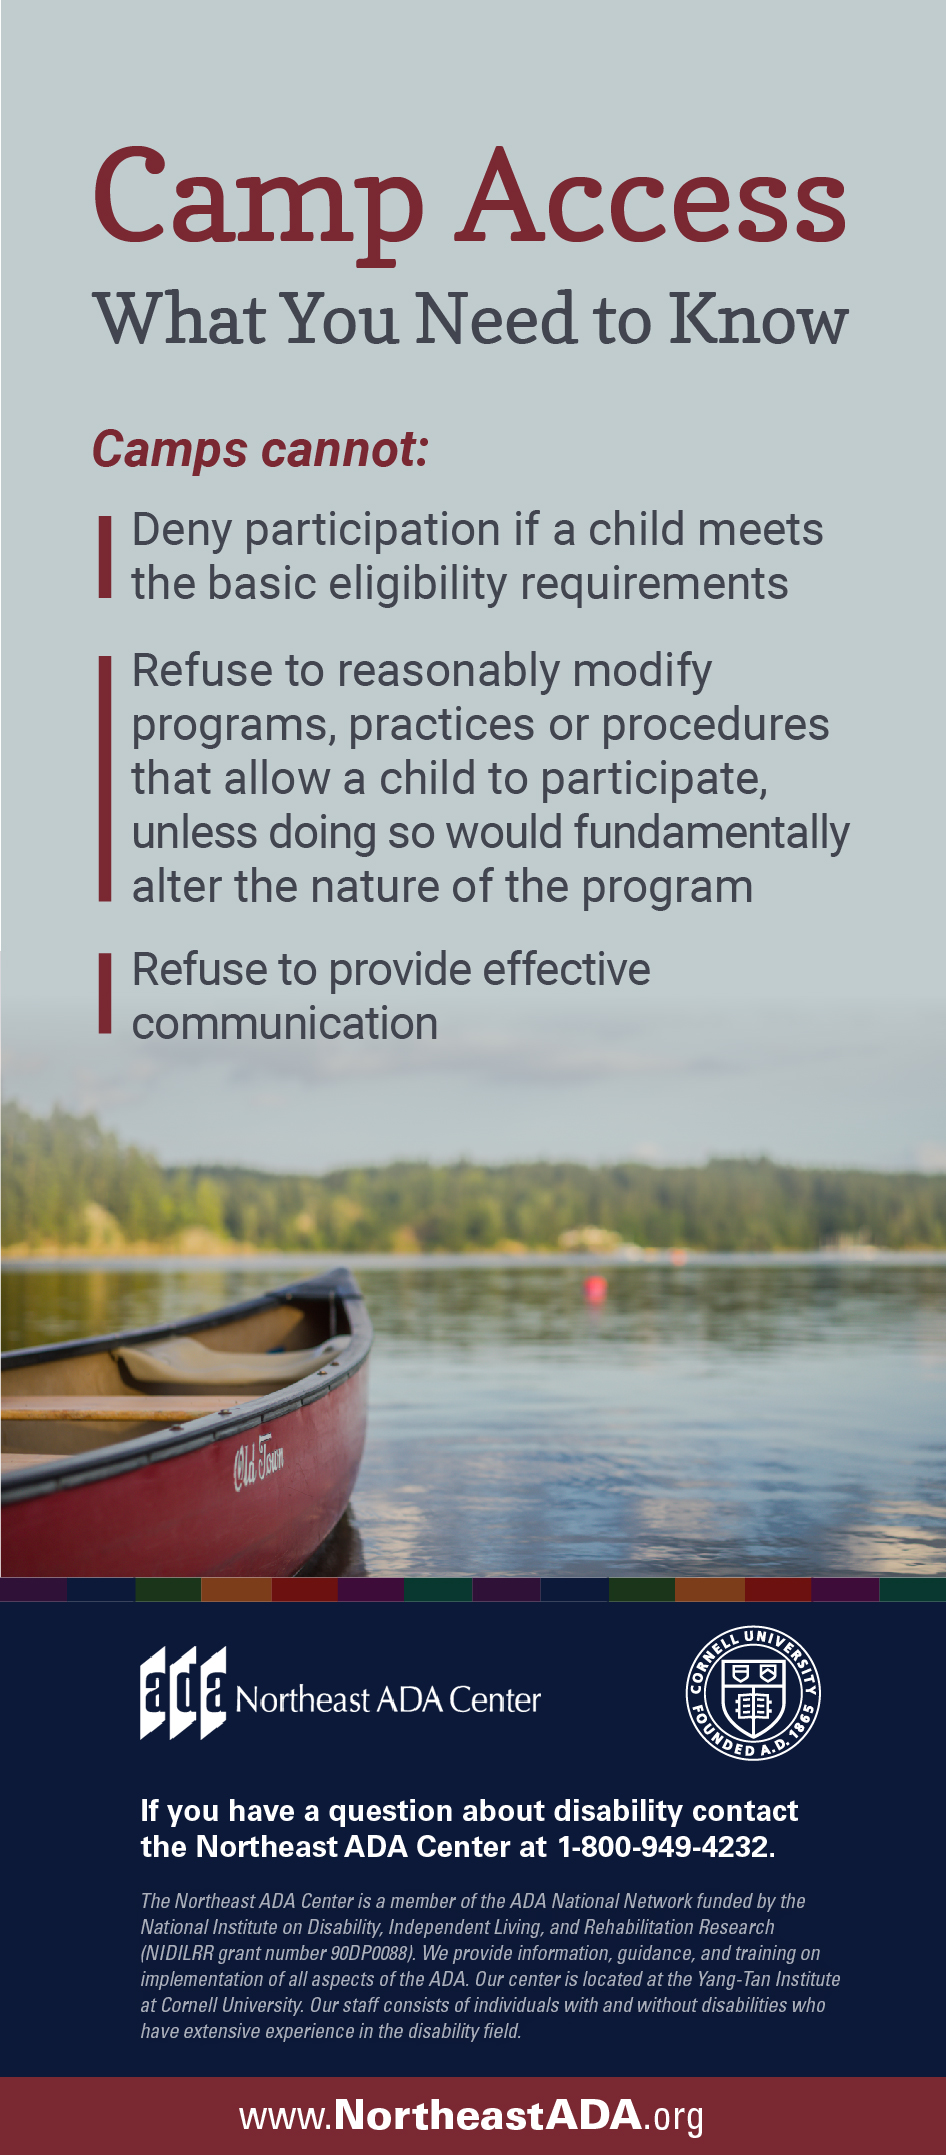 Infographic titled 'Camp Access' featuring a boat on a lake.